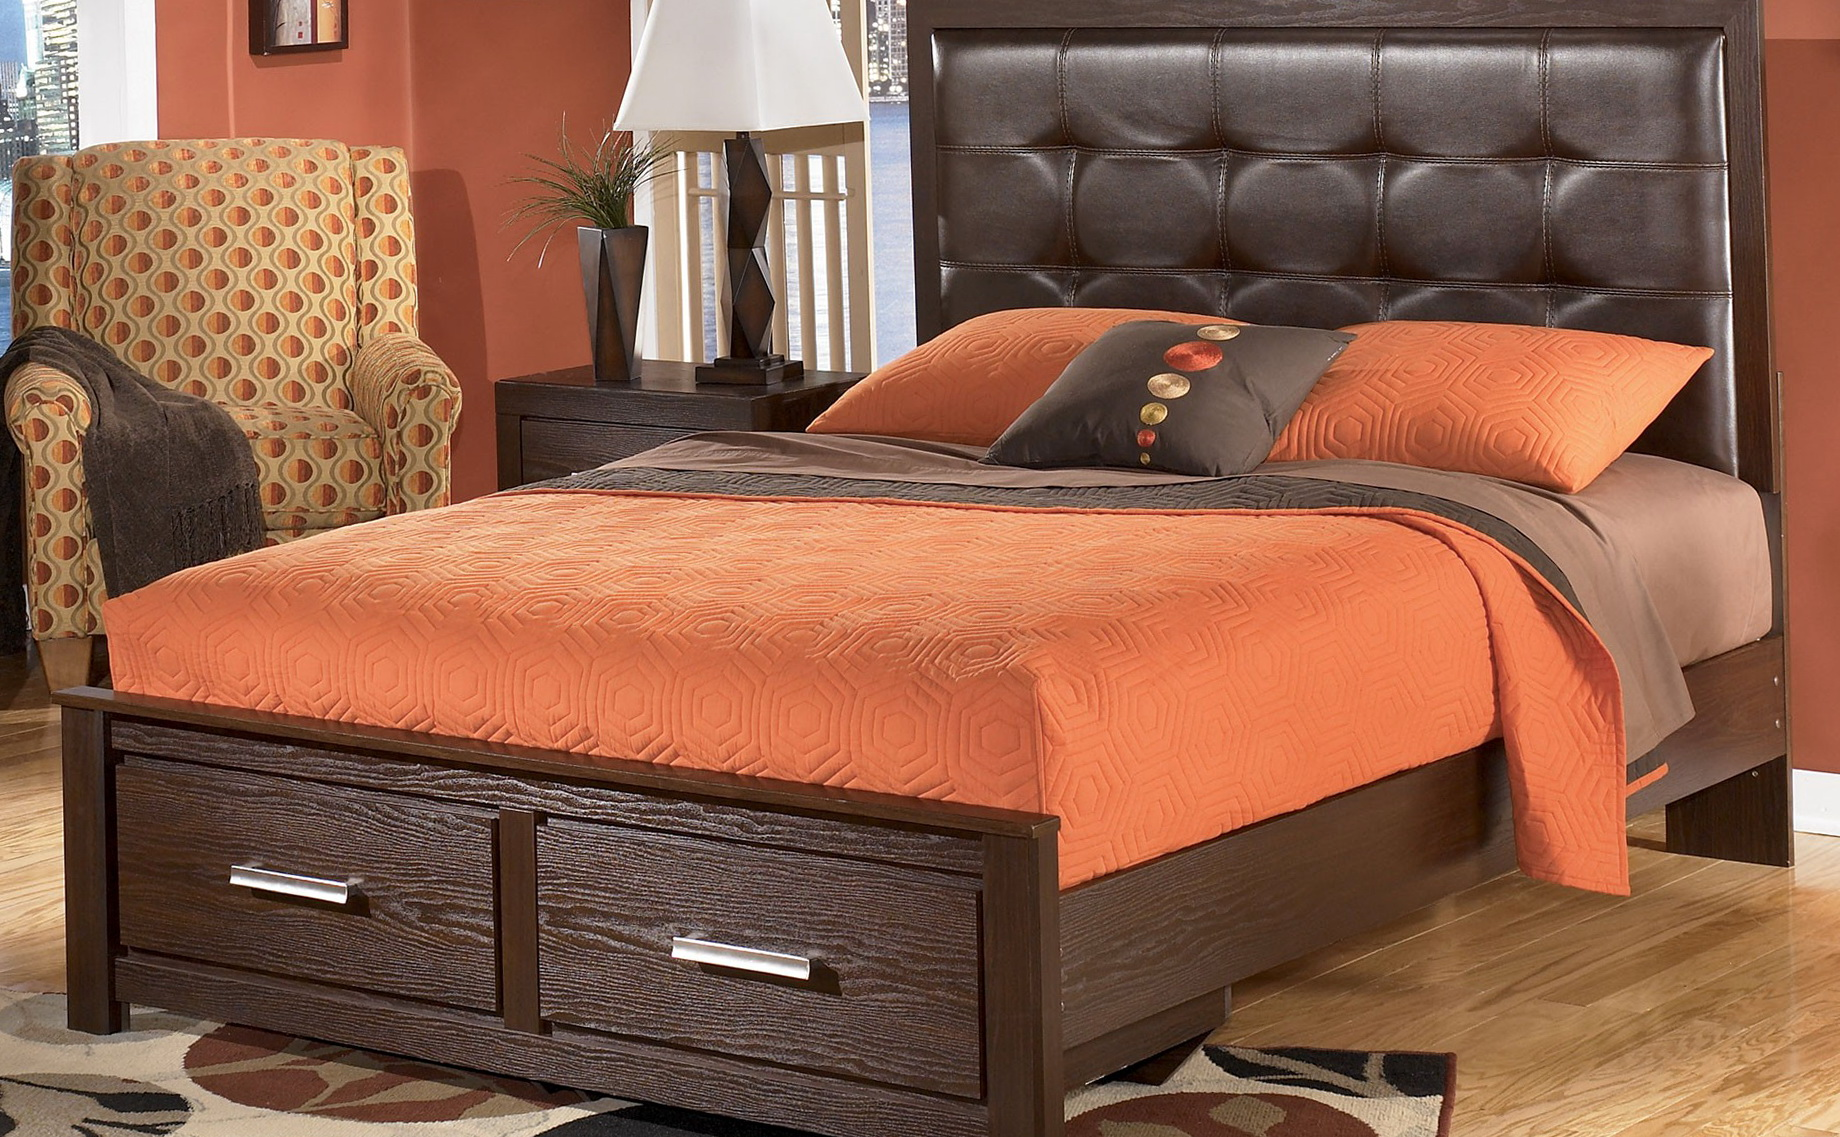 Upholstered Queen Bed With Storage